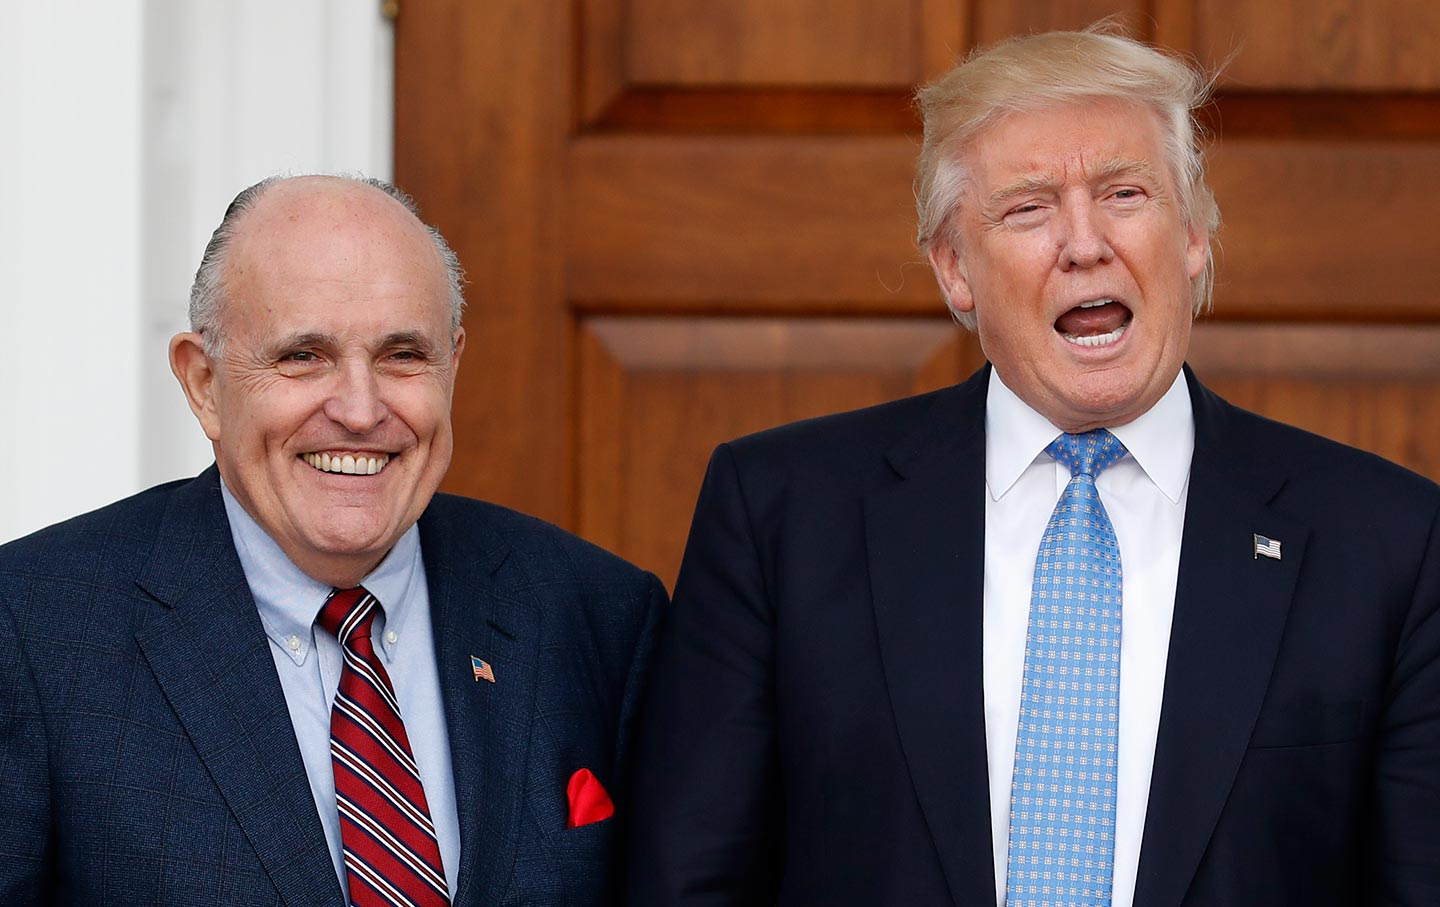 Trump and Guiliani